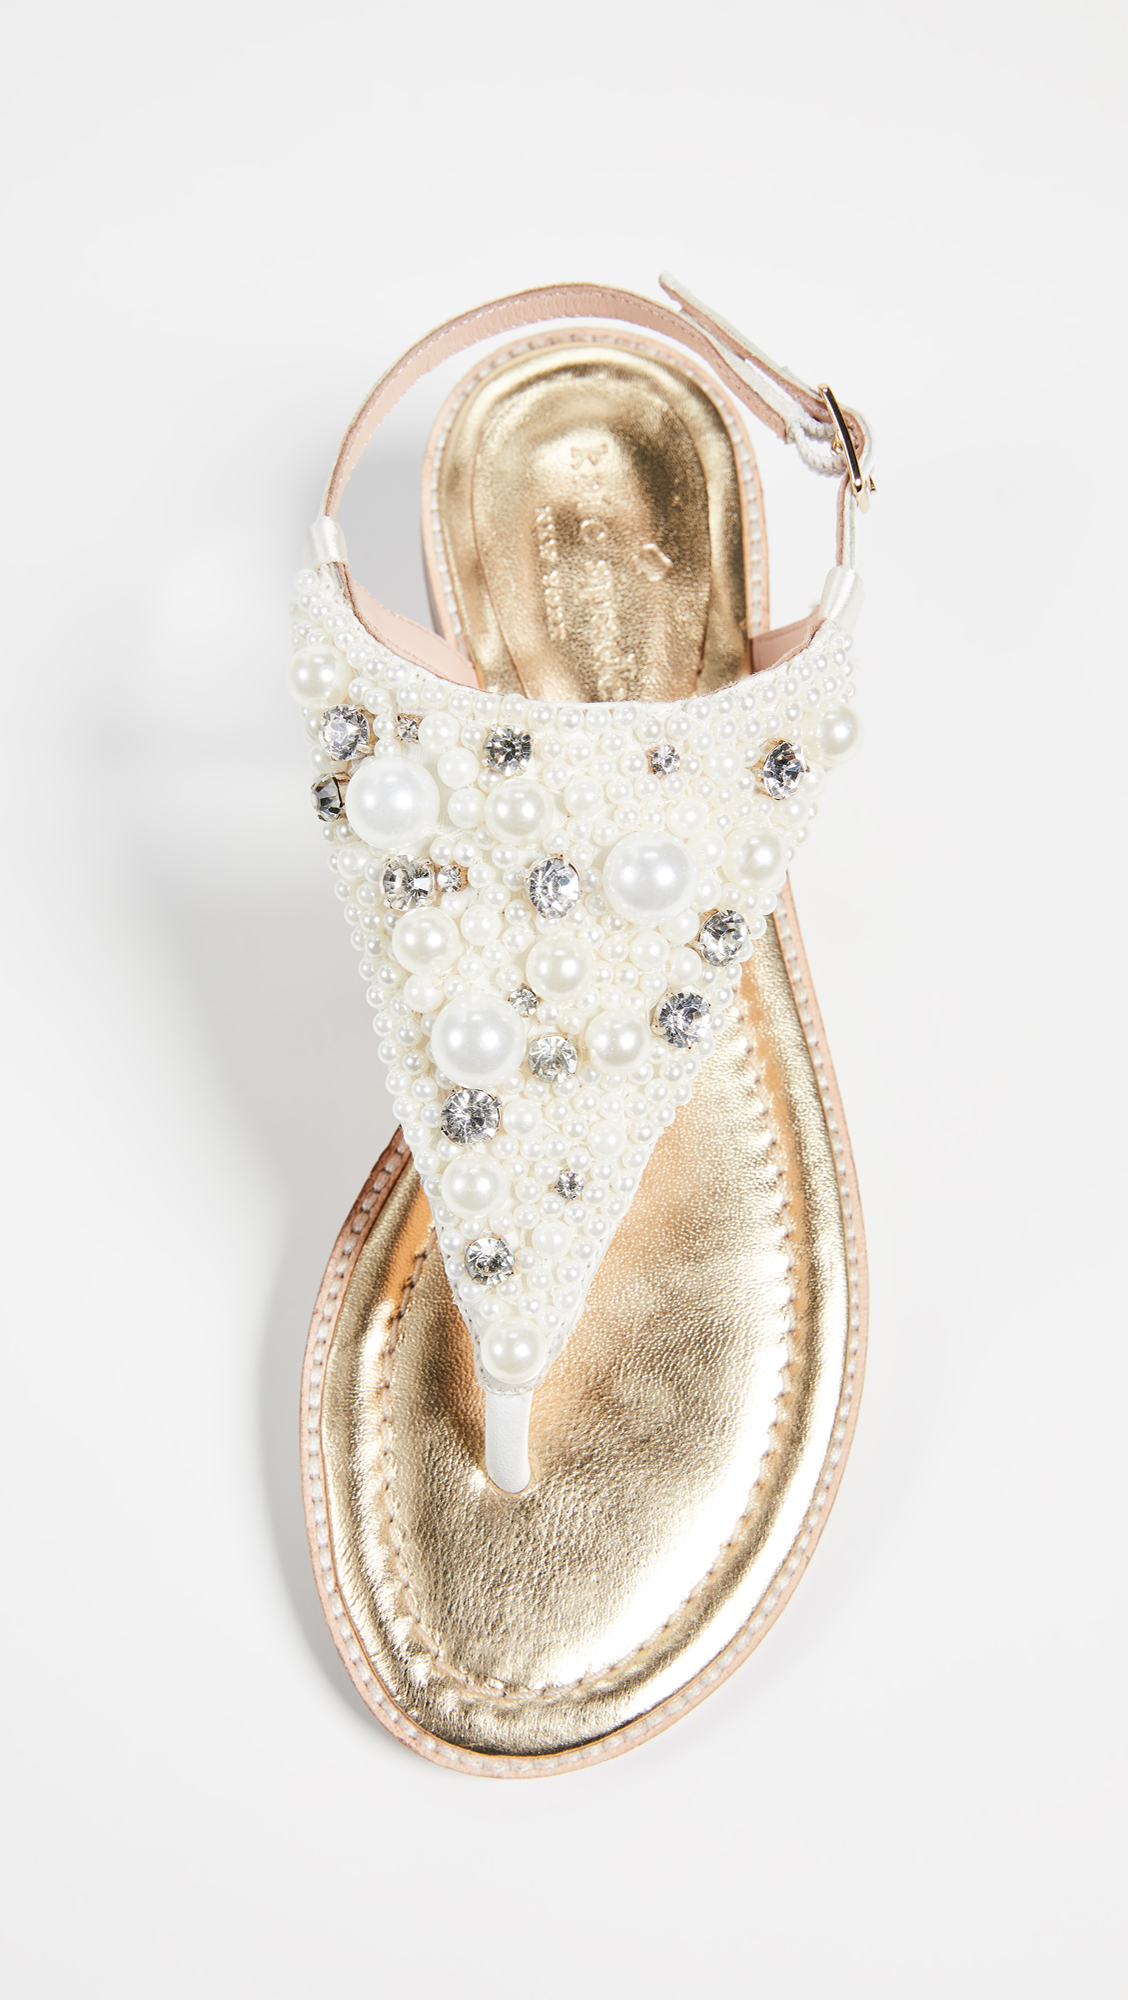 e4bcc467583 Kate Spade New York Sama Imitation Pearl Sandals